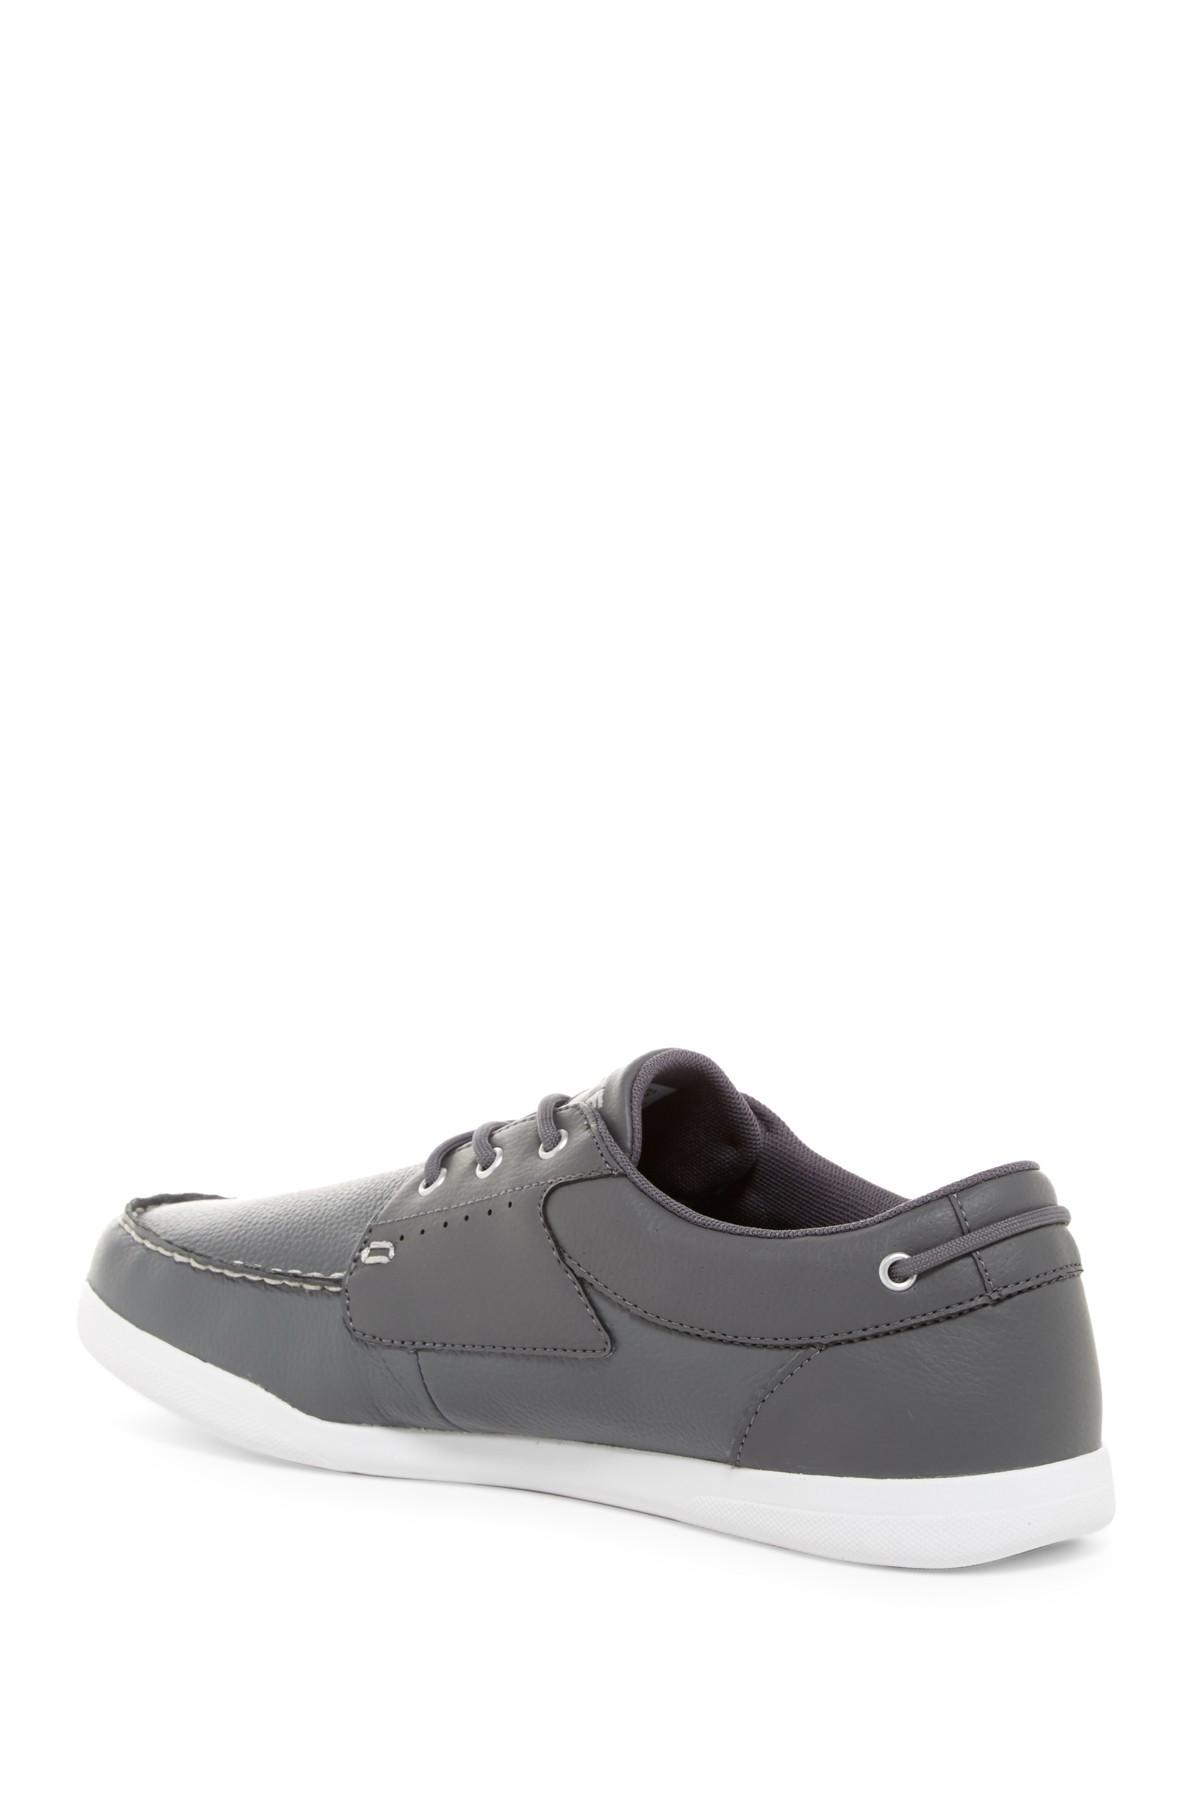 lyst lacoste codecasa boat sneaker in gray for men